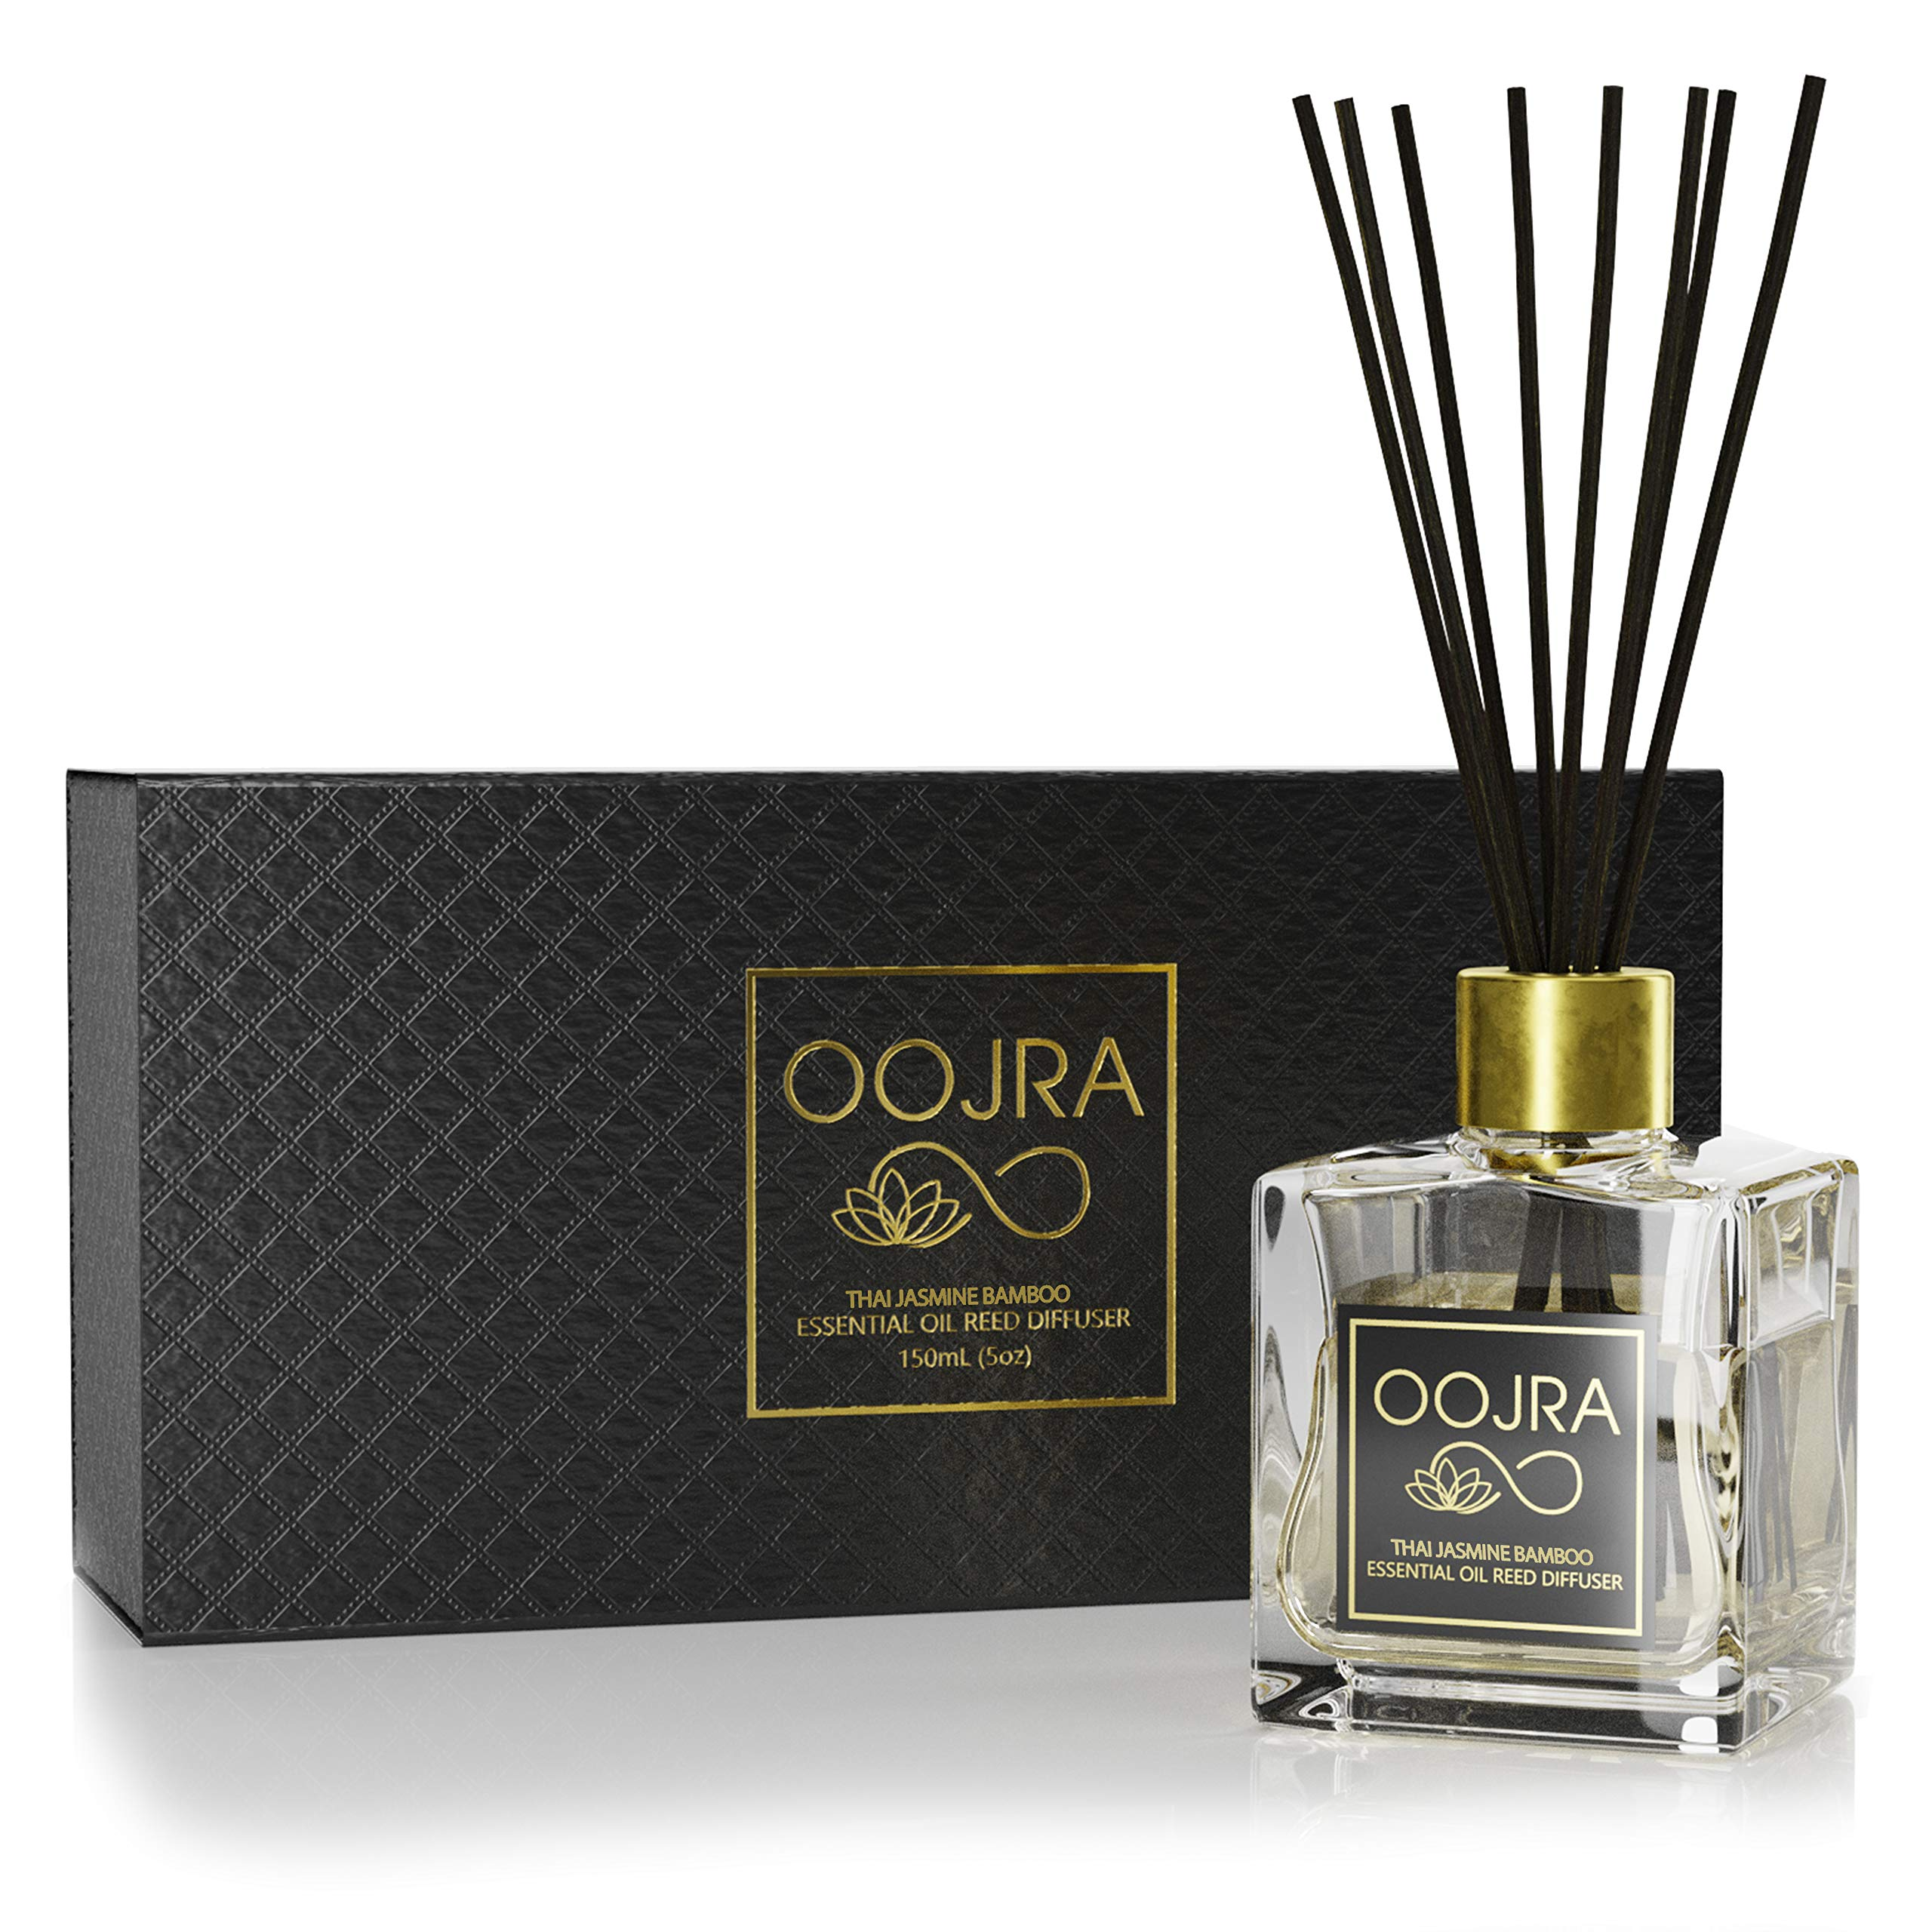 Oojra Thai Jasmine Bamboo Essential Oil Reed Diffuser Gift Set, Glass Bottle, Reed Sticks, Natural Scented Long Lasting Fragrance Oil (3+ Months 5 oz) for Aromatherapy and Air Freshener by OOJRA